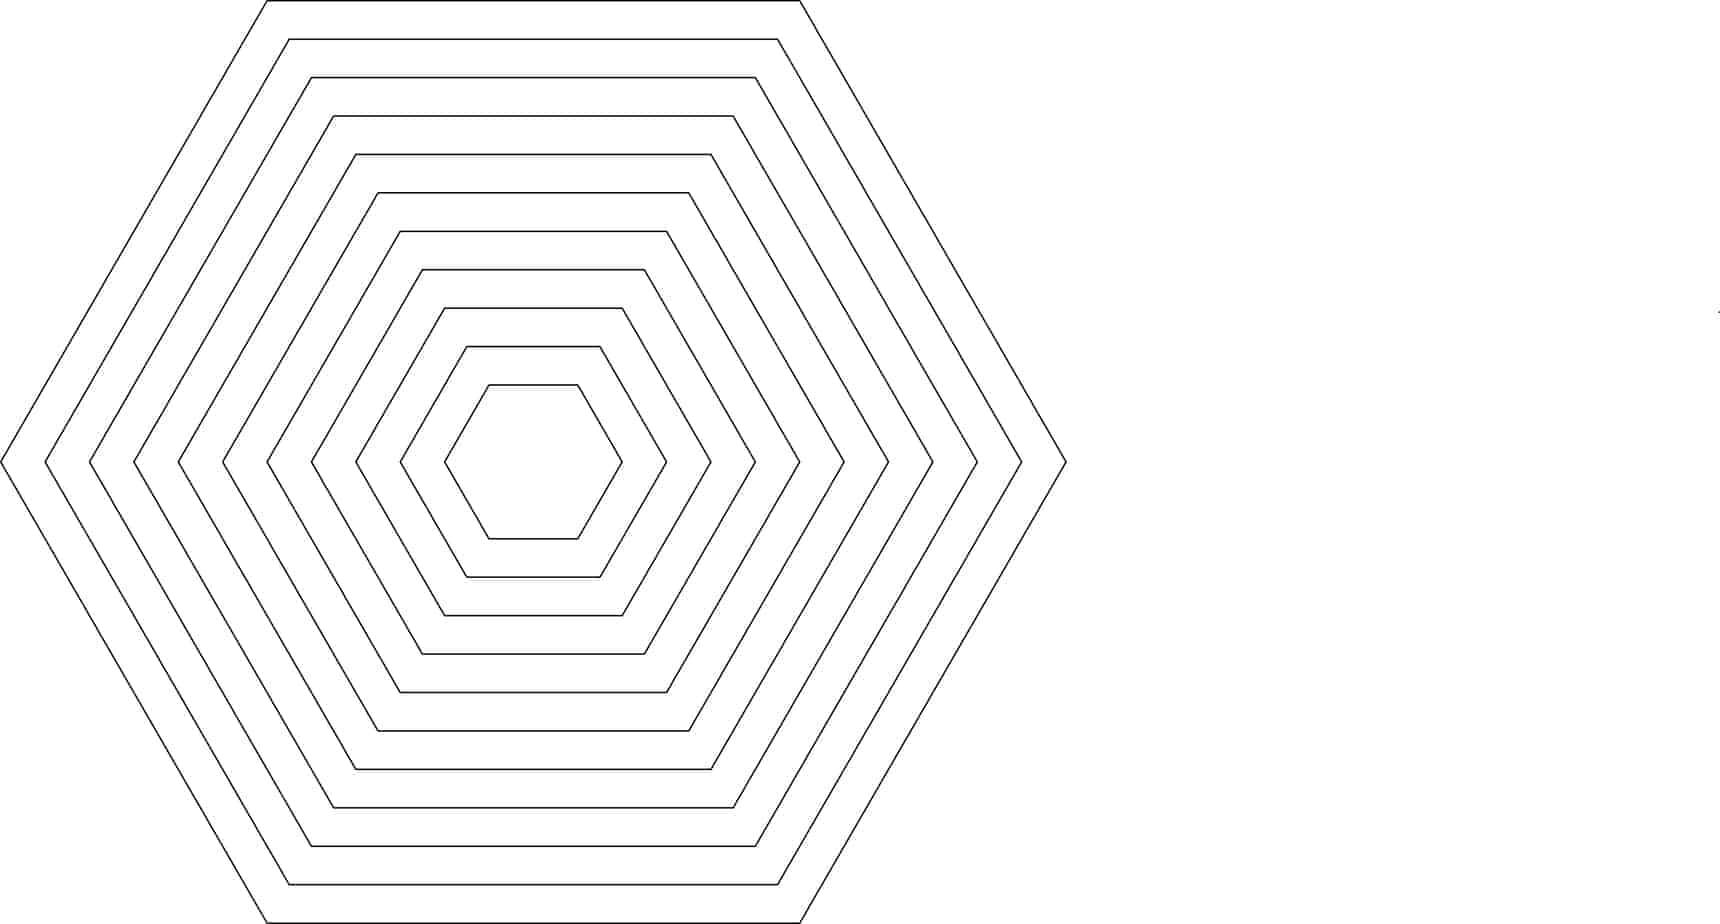 1 5 inch hexagon template - nested hexagons 1 6 sides design templates